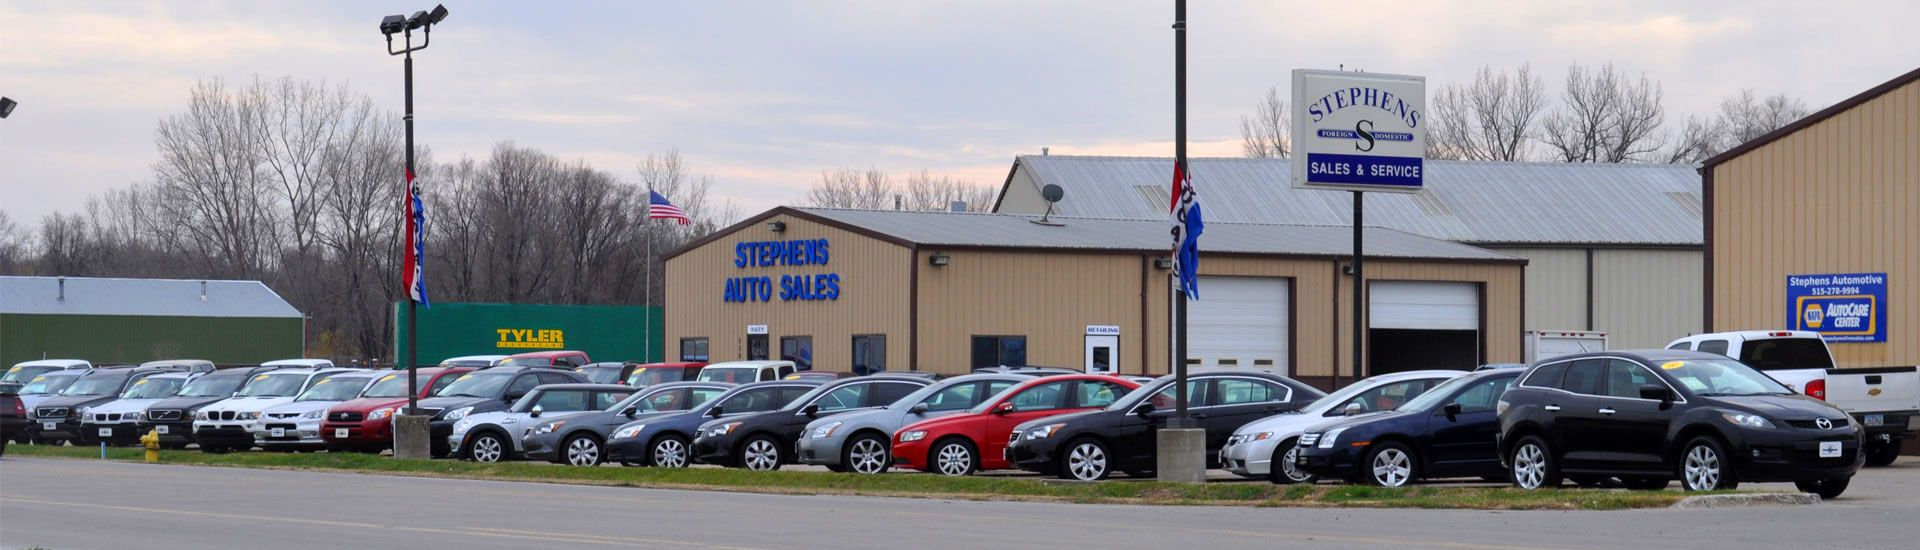 Used Car Dealerships In Des Moines >> Used Cars Des Moines Iowa Stephens Automotive Sales